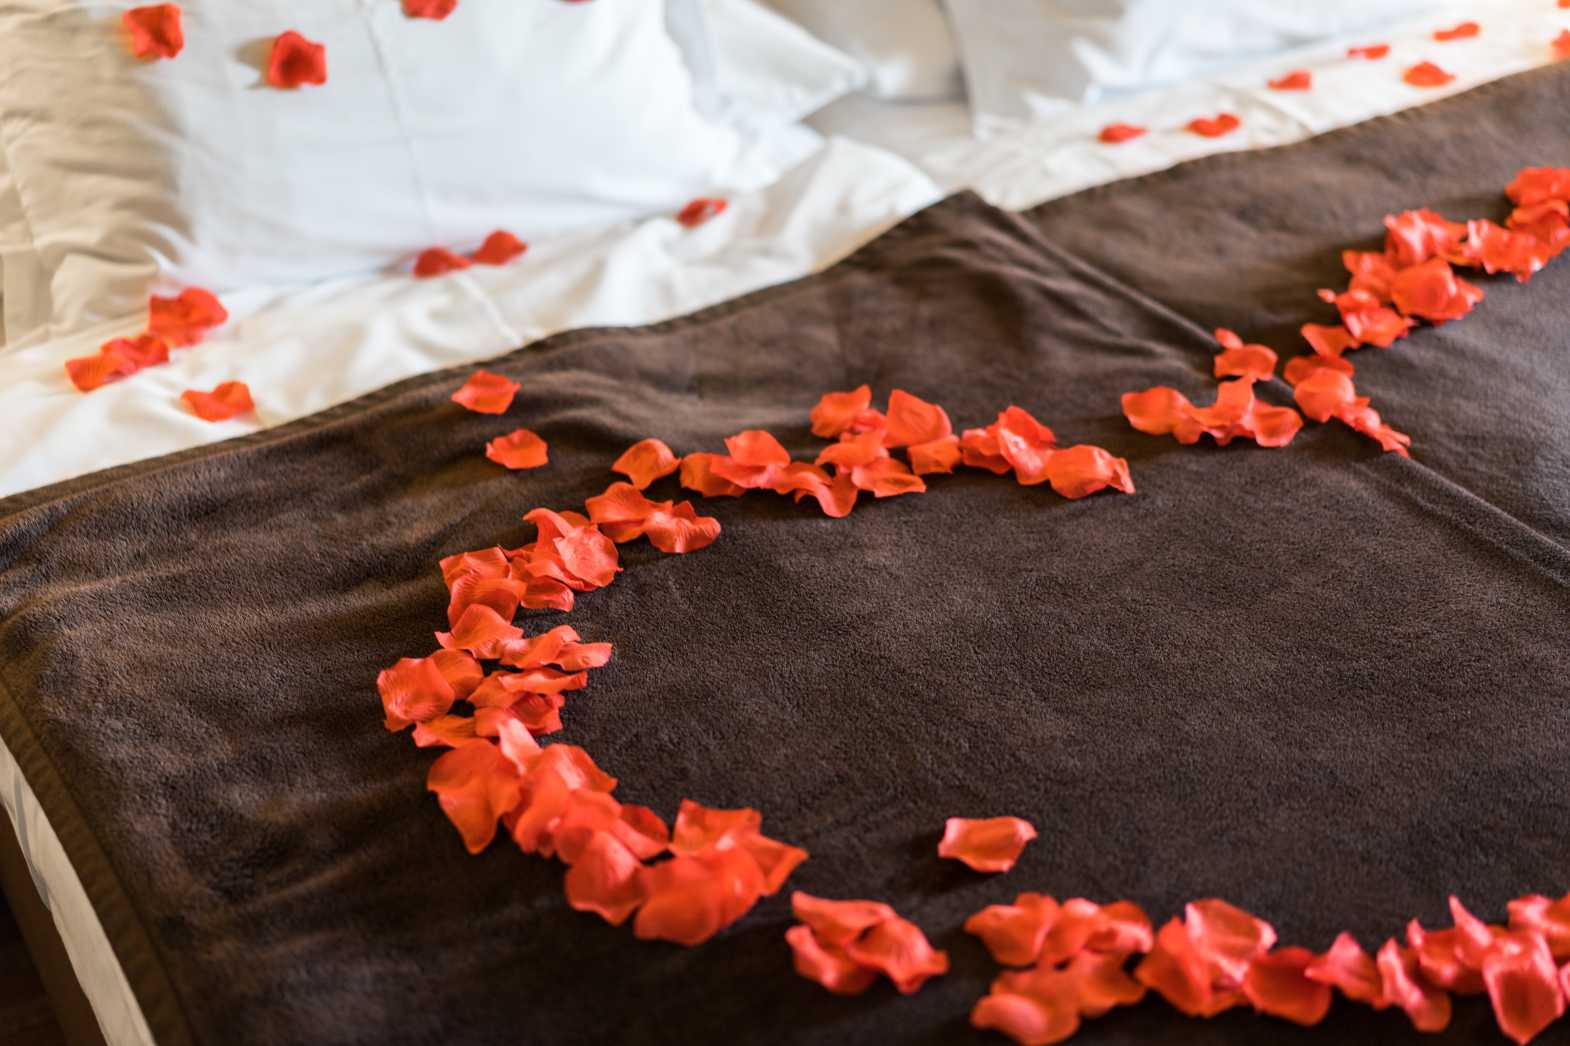 romantic and lovely bed of roses petals free stock photos picjumbo.com  - Valentýnské fotografie zdarma – picjumbo.com